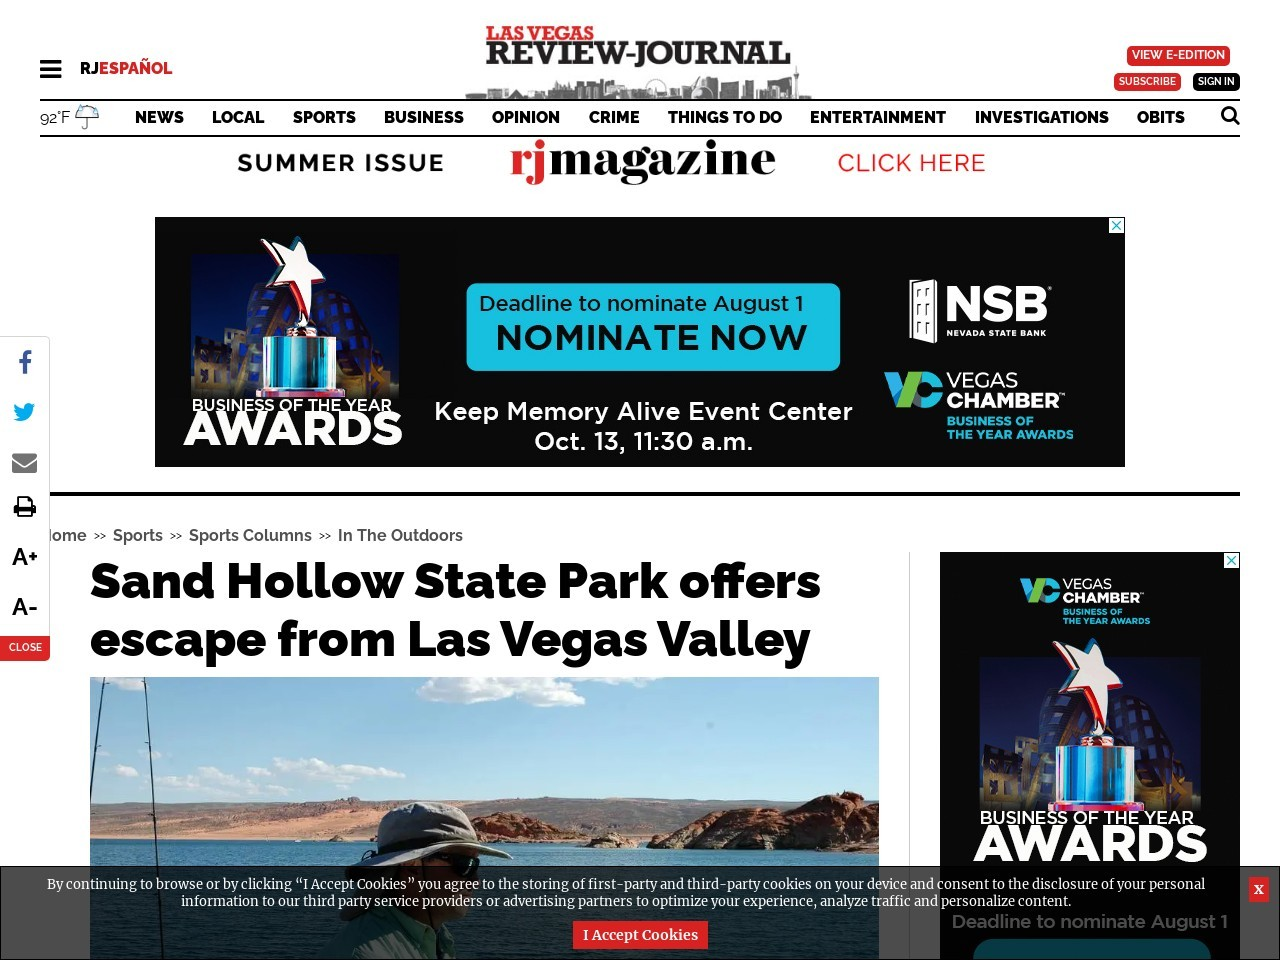 Sand Hollow State Park offers escape from Las Vegas Valley